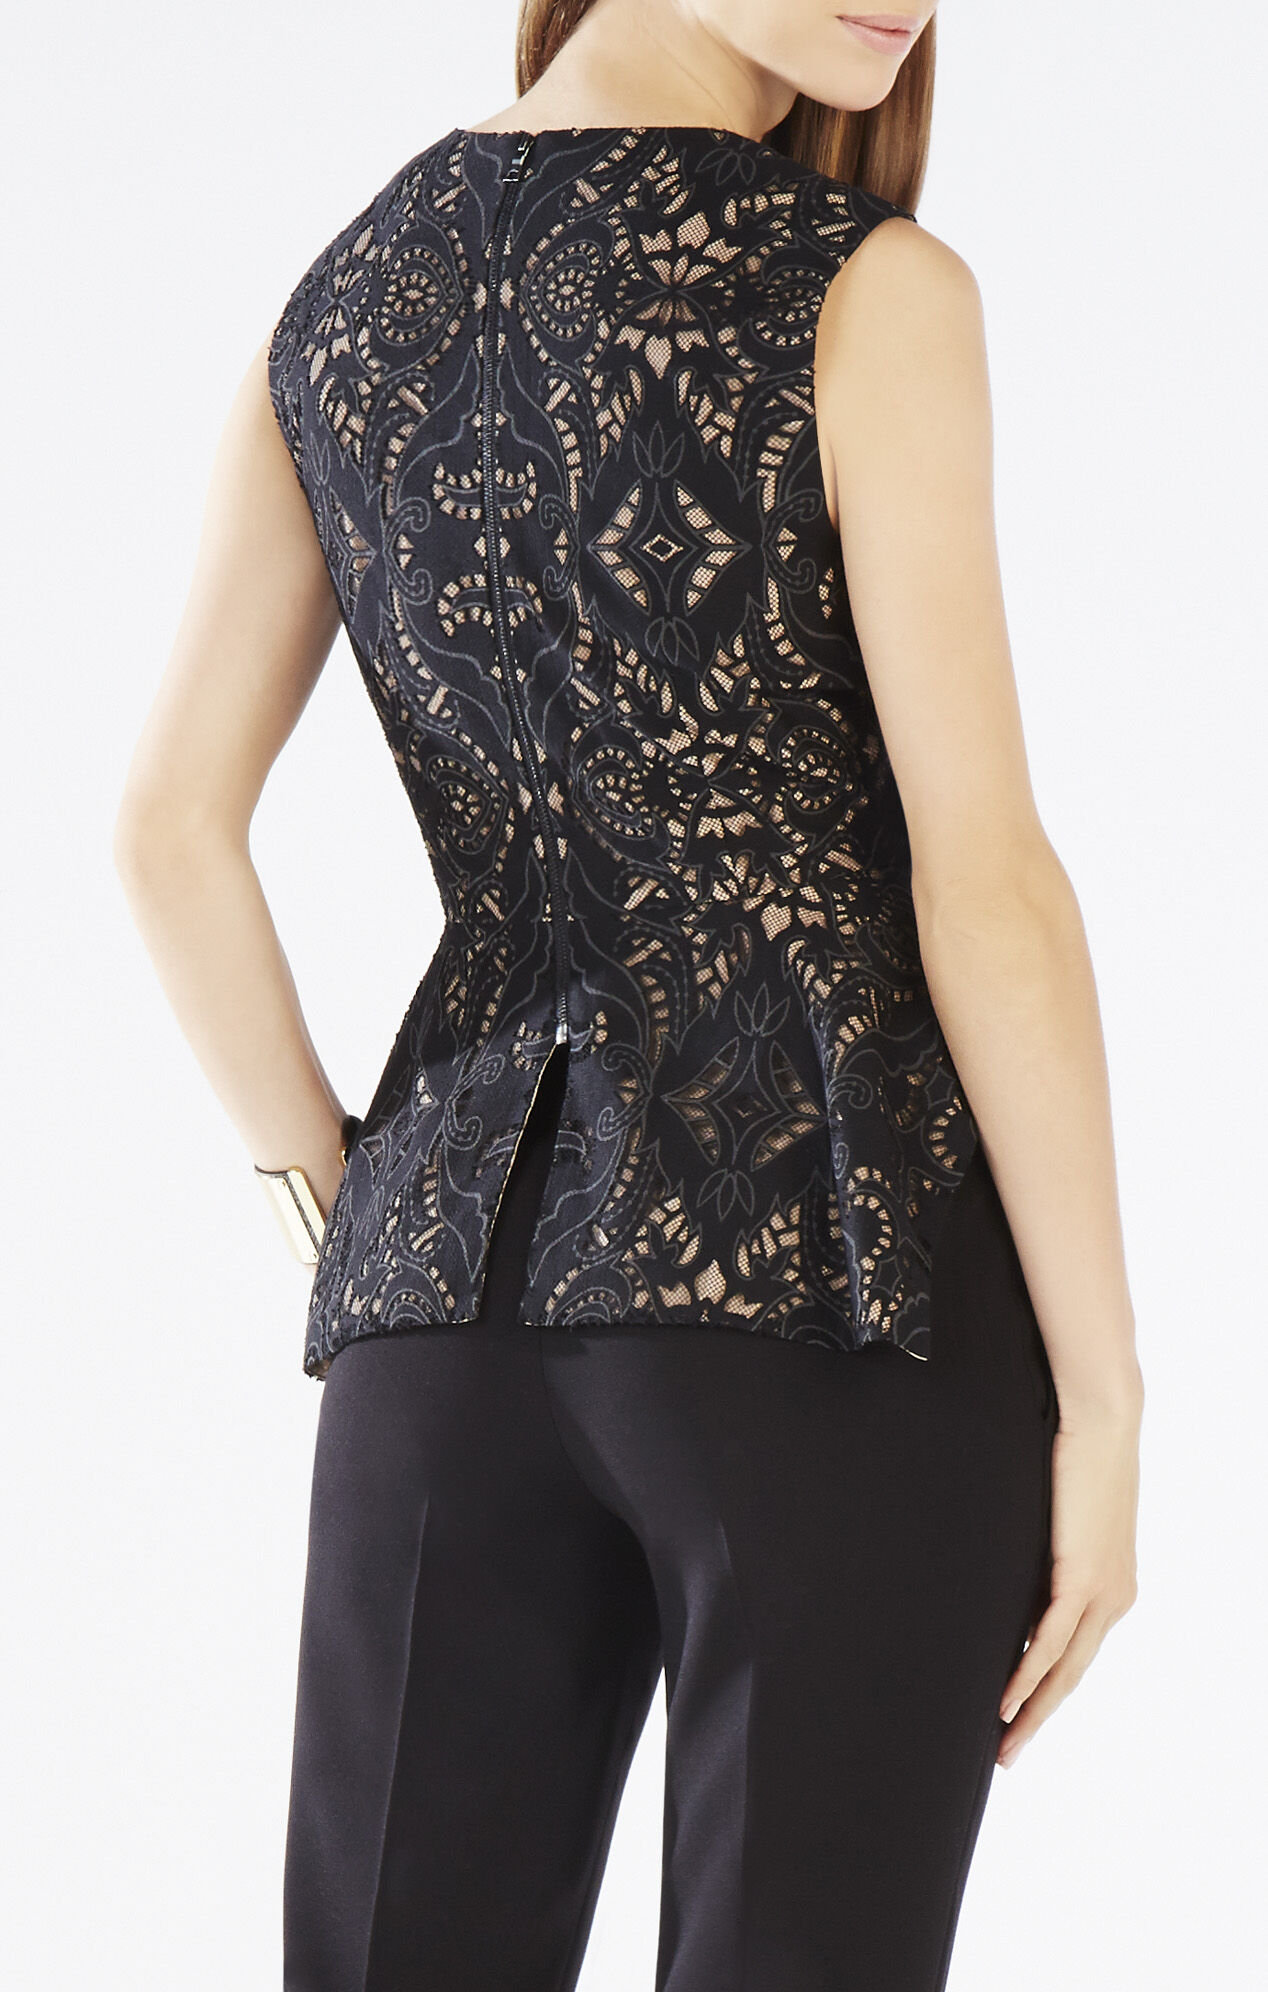 Lace Peplum Top - This peplum top is in a stripey lace and is pretty sheer. It also has 3/4 flounce sleeves, so it's great for showing off bracelets and blingy watches, plus it has an exposed back zip closure. Refined with slim midi skirts and drop earrings, cute with skinny jeans and bangles/5(10).